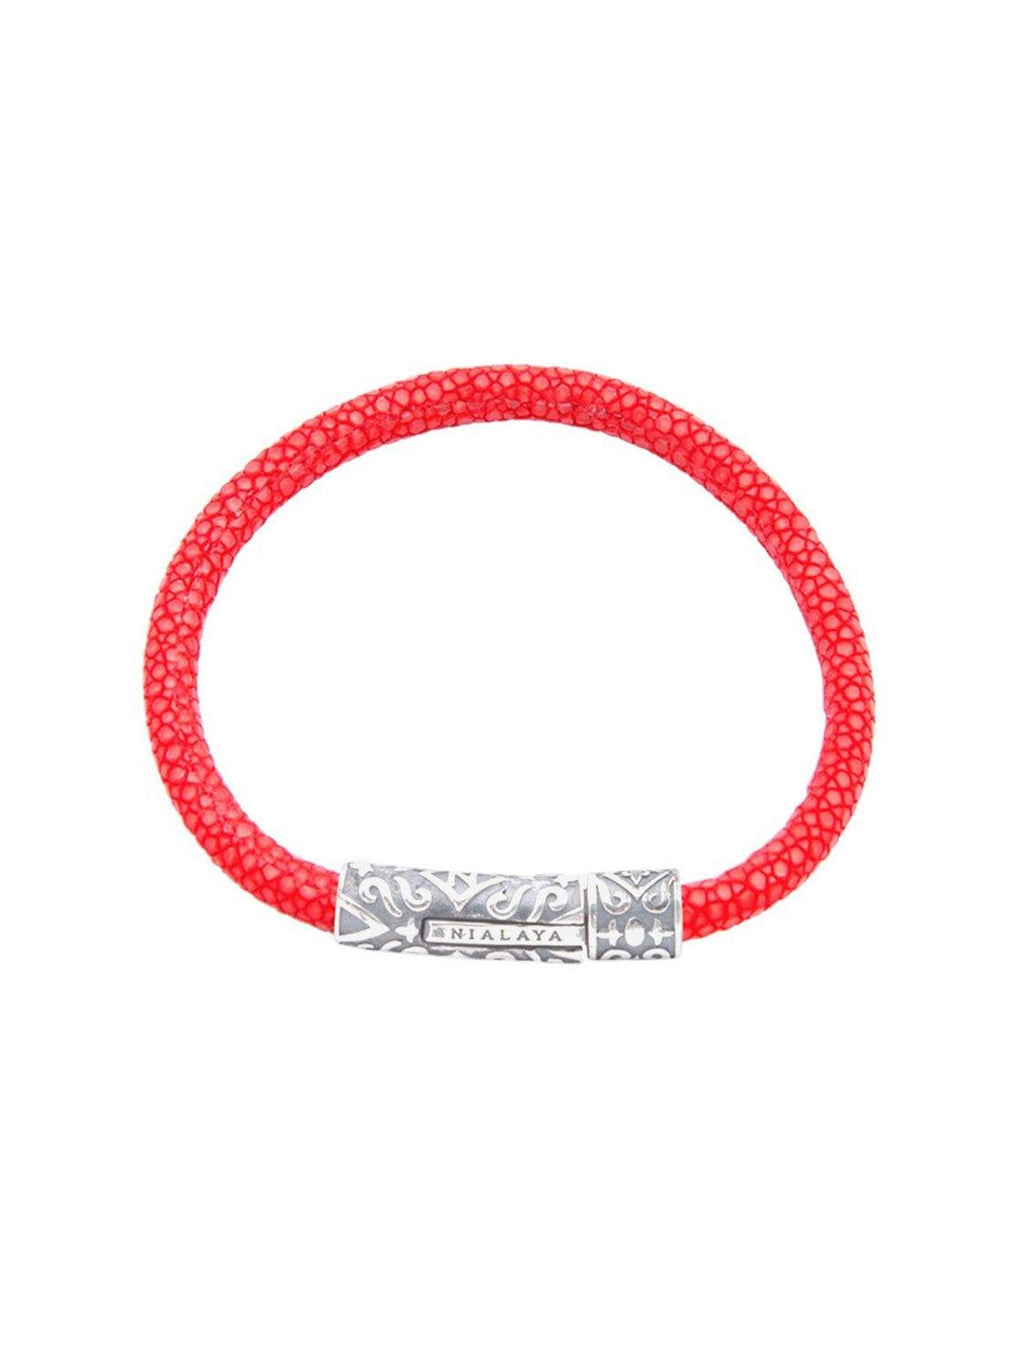 Men's Red Stingray Bracelet with Silver Lock